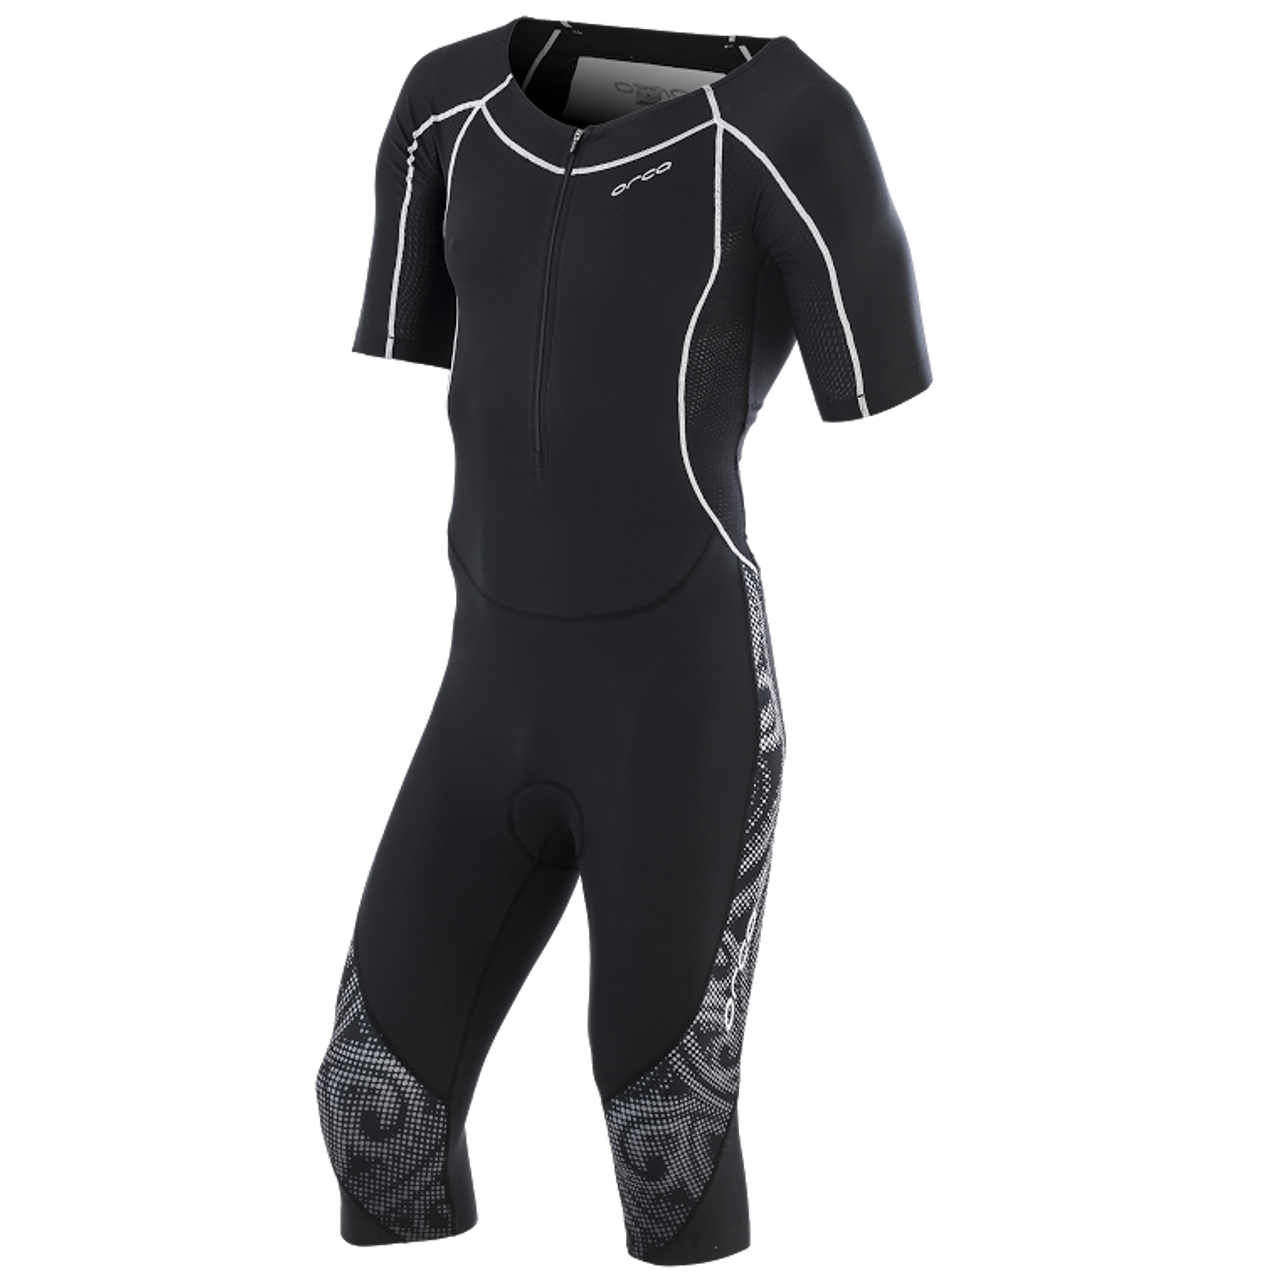 Orca 226 Kompress Race Winter Mens Tri Suit Cycling Running Swimming Triathlon Sporting Goods Tracksuits & Sets